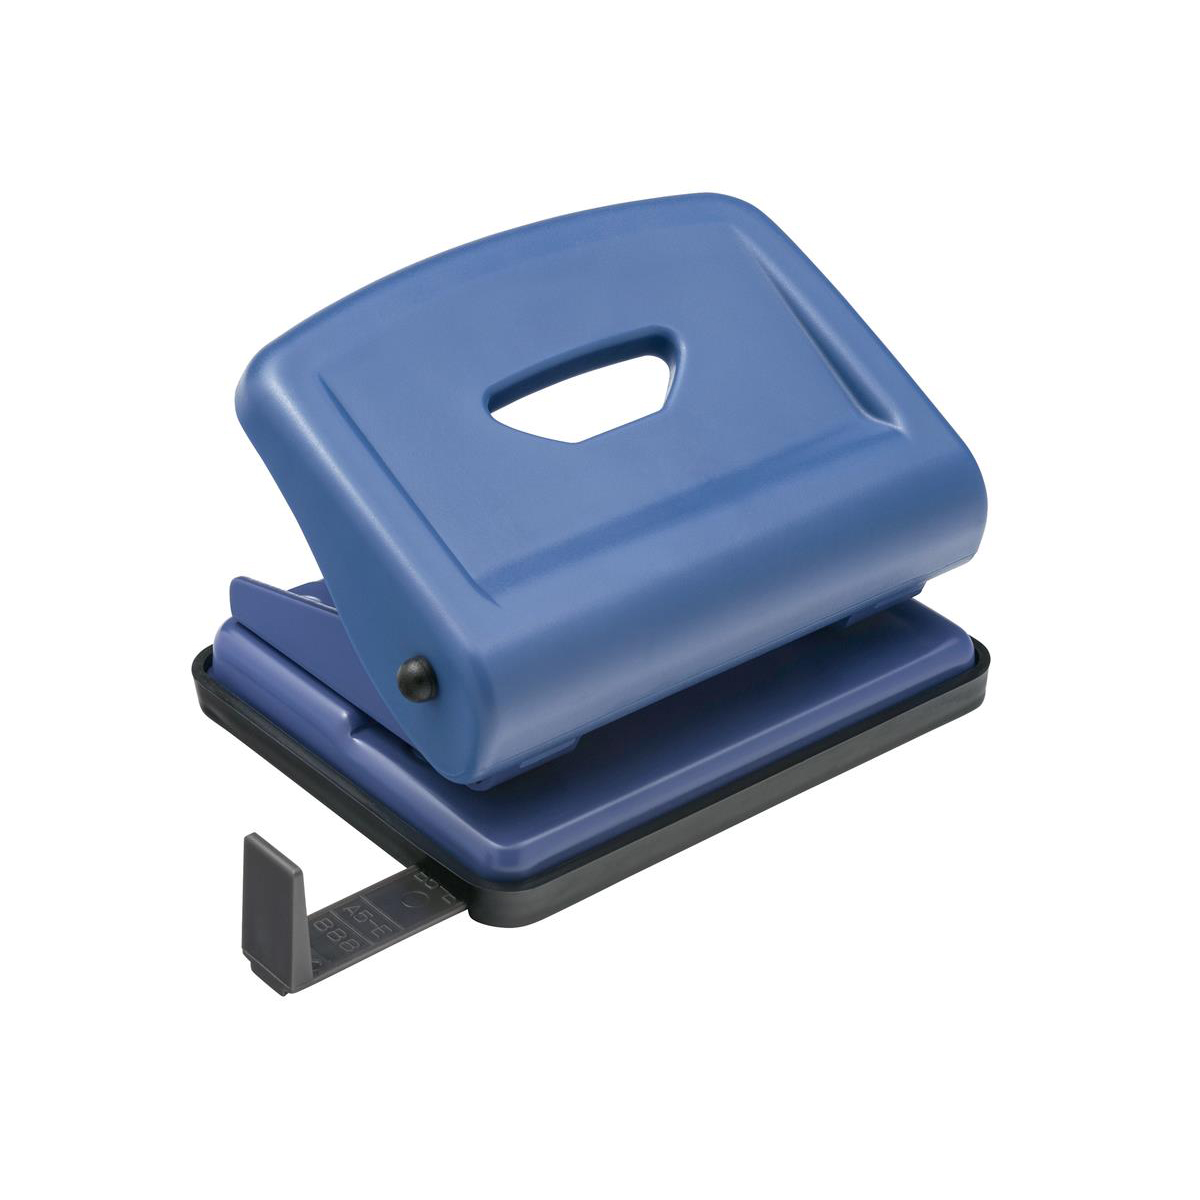 Hole Punches 5 Star Office Punch ABS/Metal 2-Hole Capacity 22x 80gsm Blue